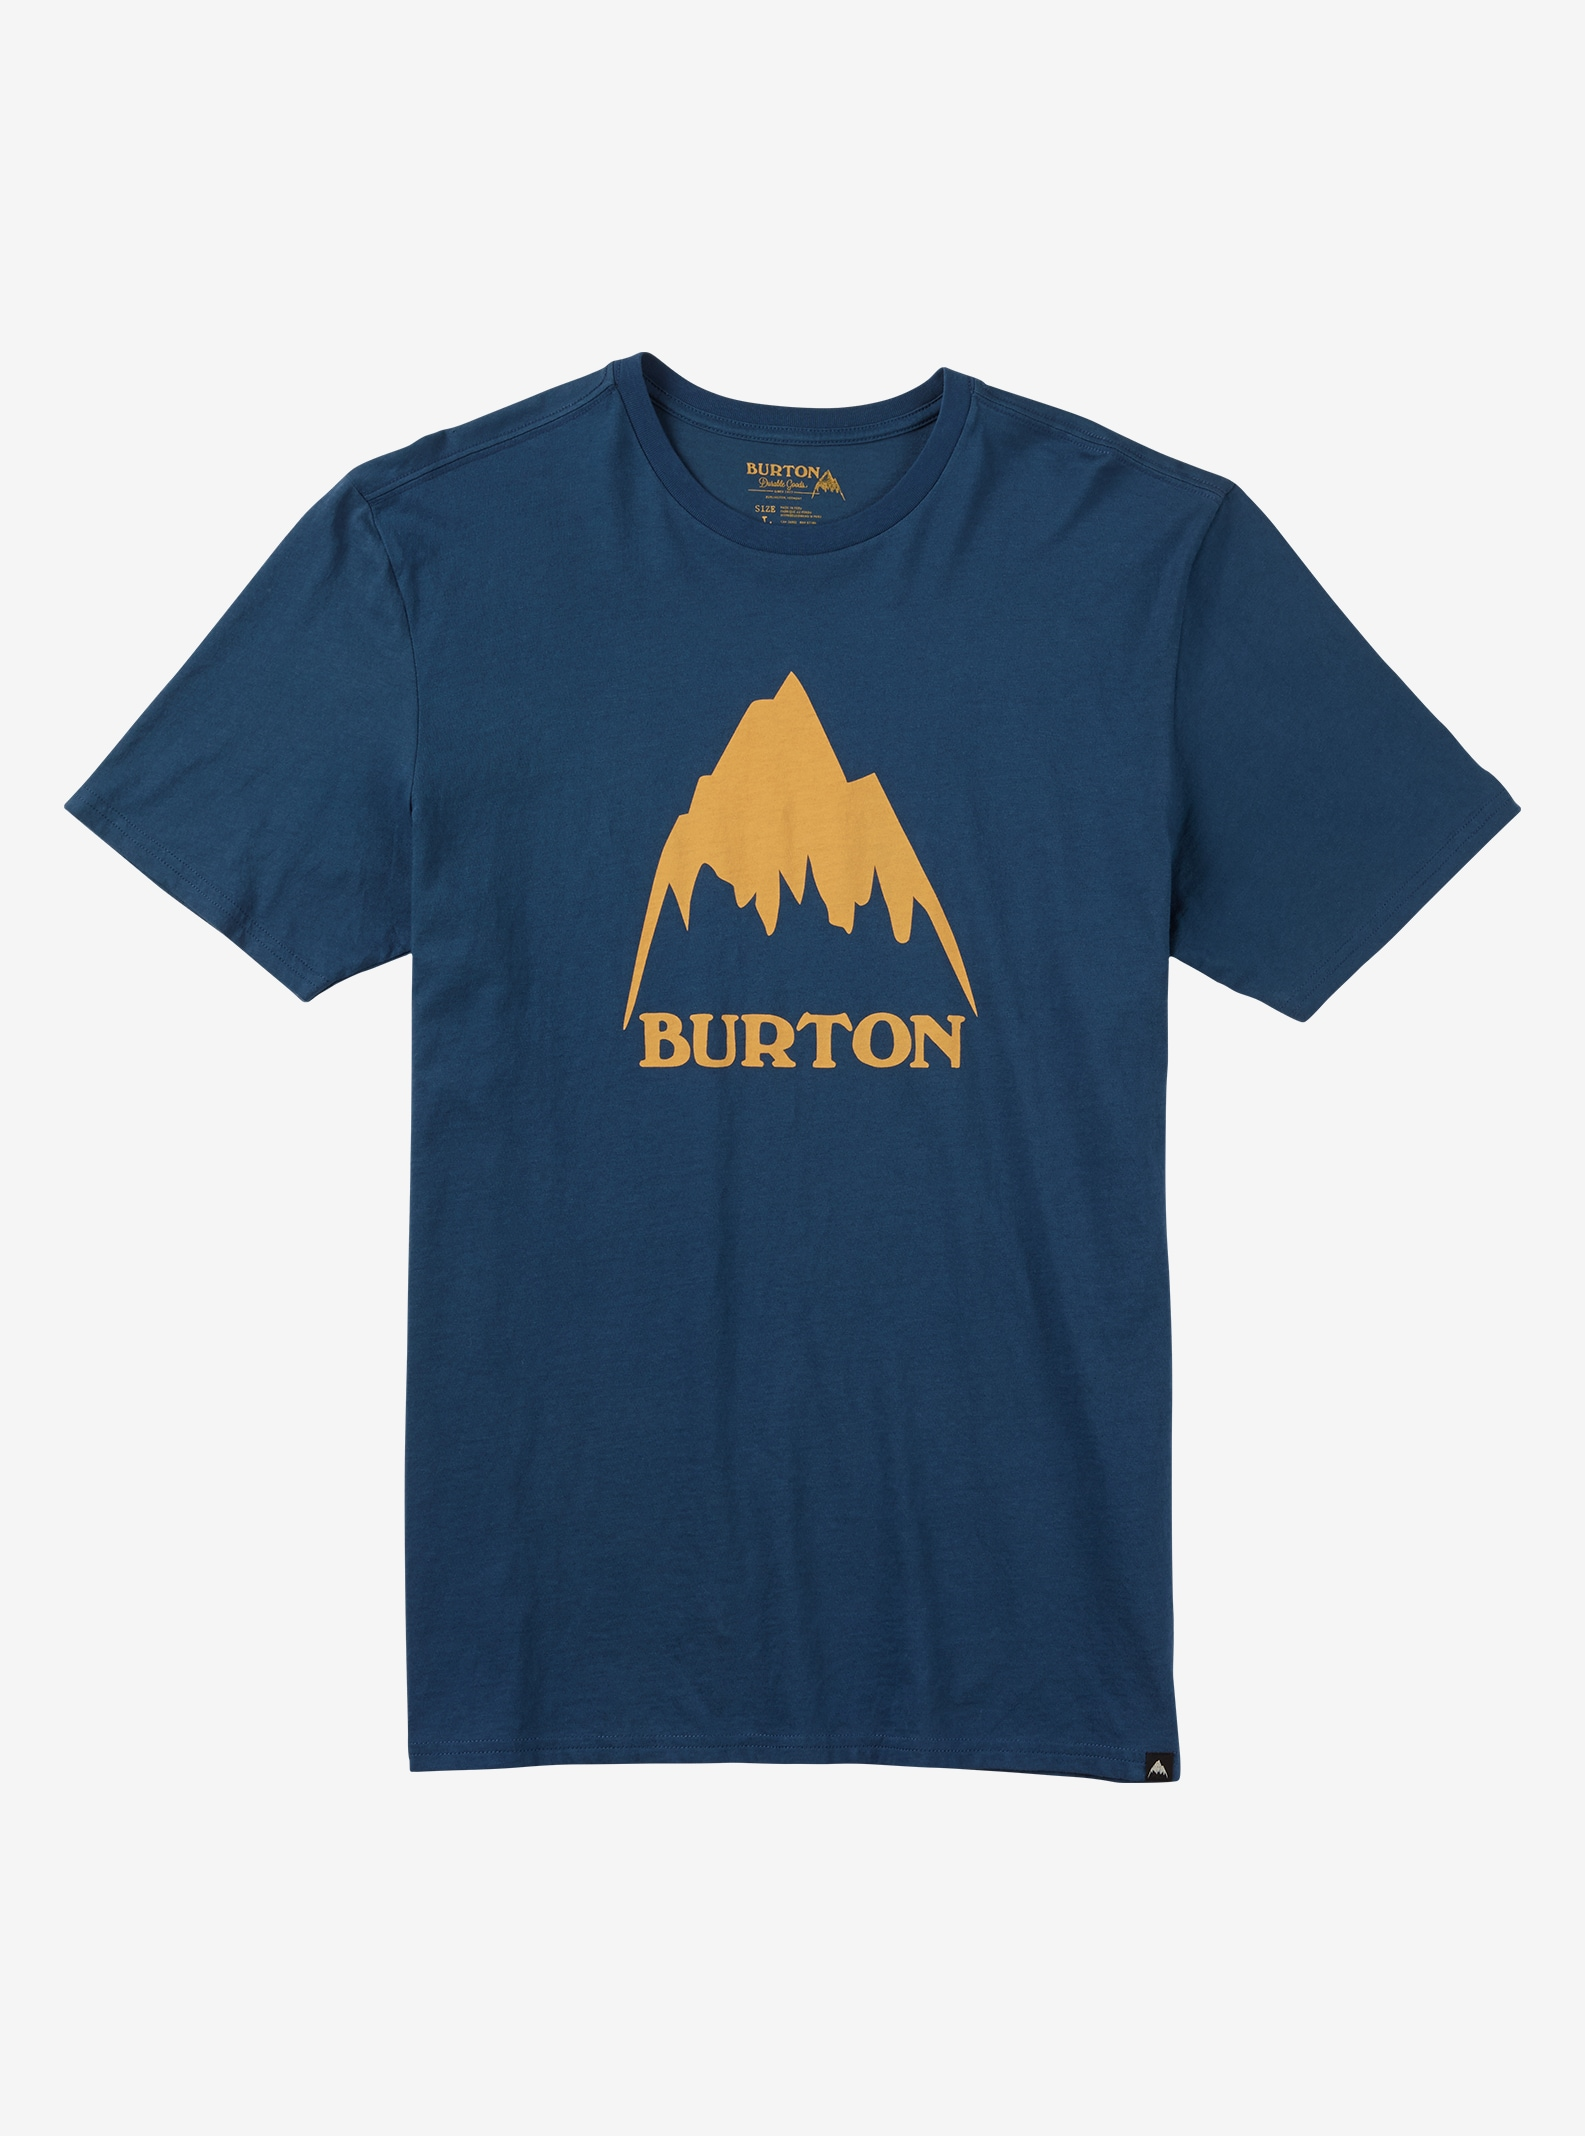 Burton Classic Mountain Short Sleeve T Shirt shown in Indigo